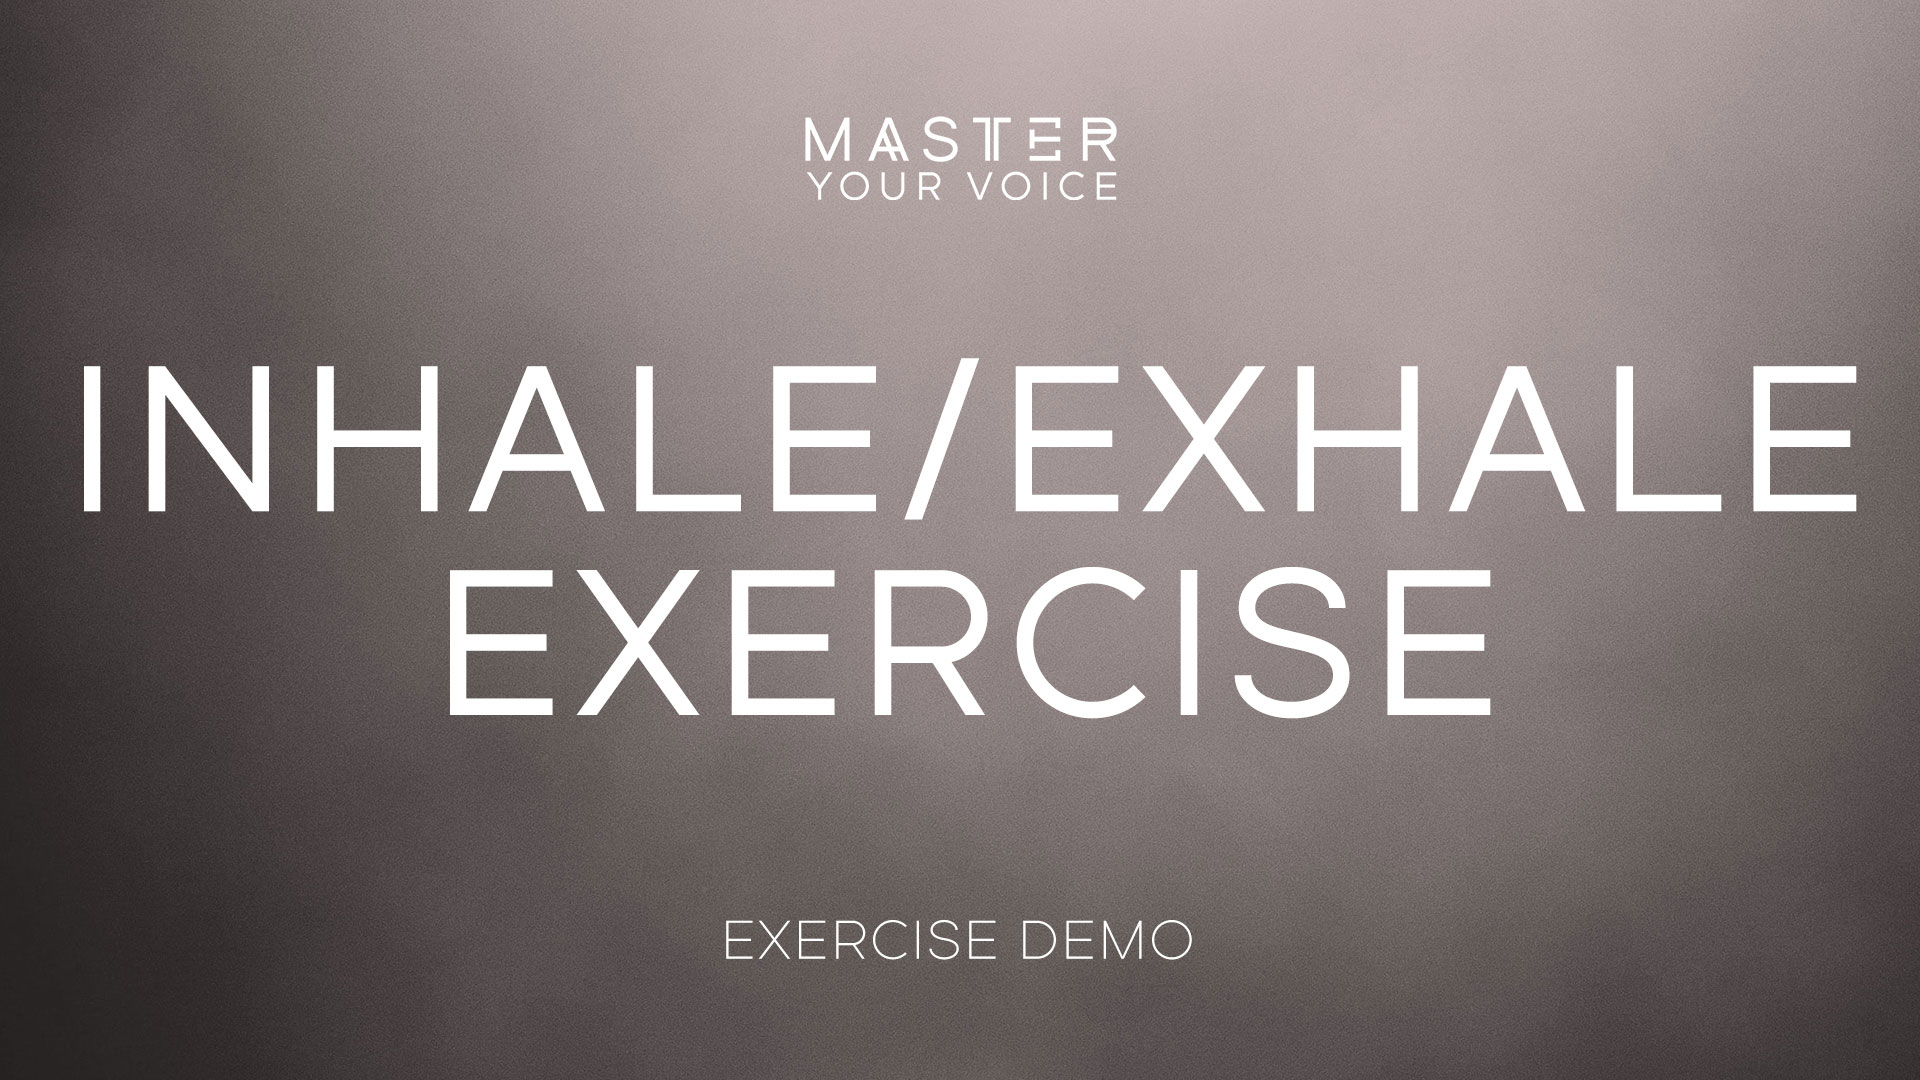 Inhale/Exhale Exercise Demo